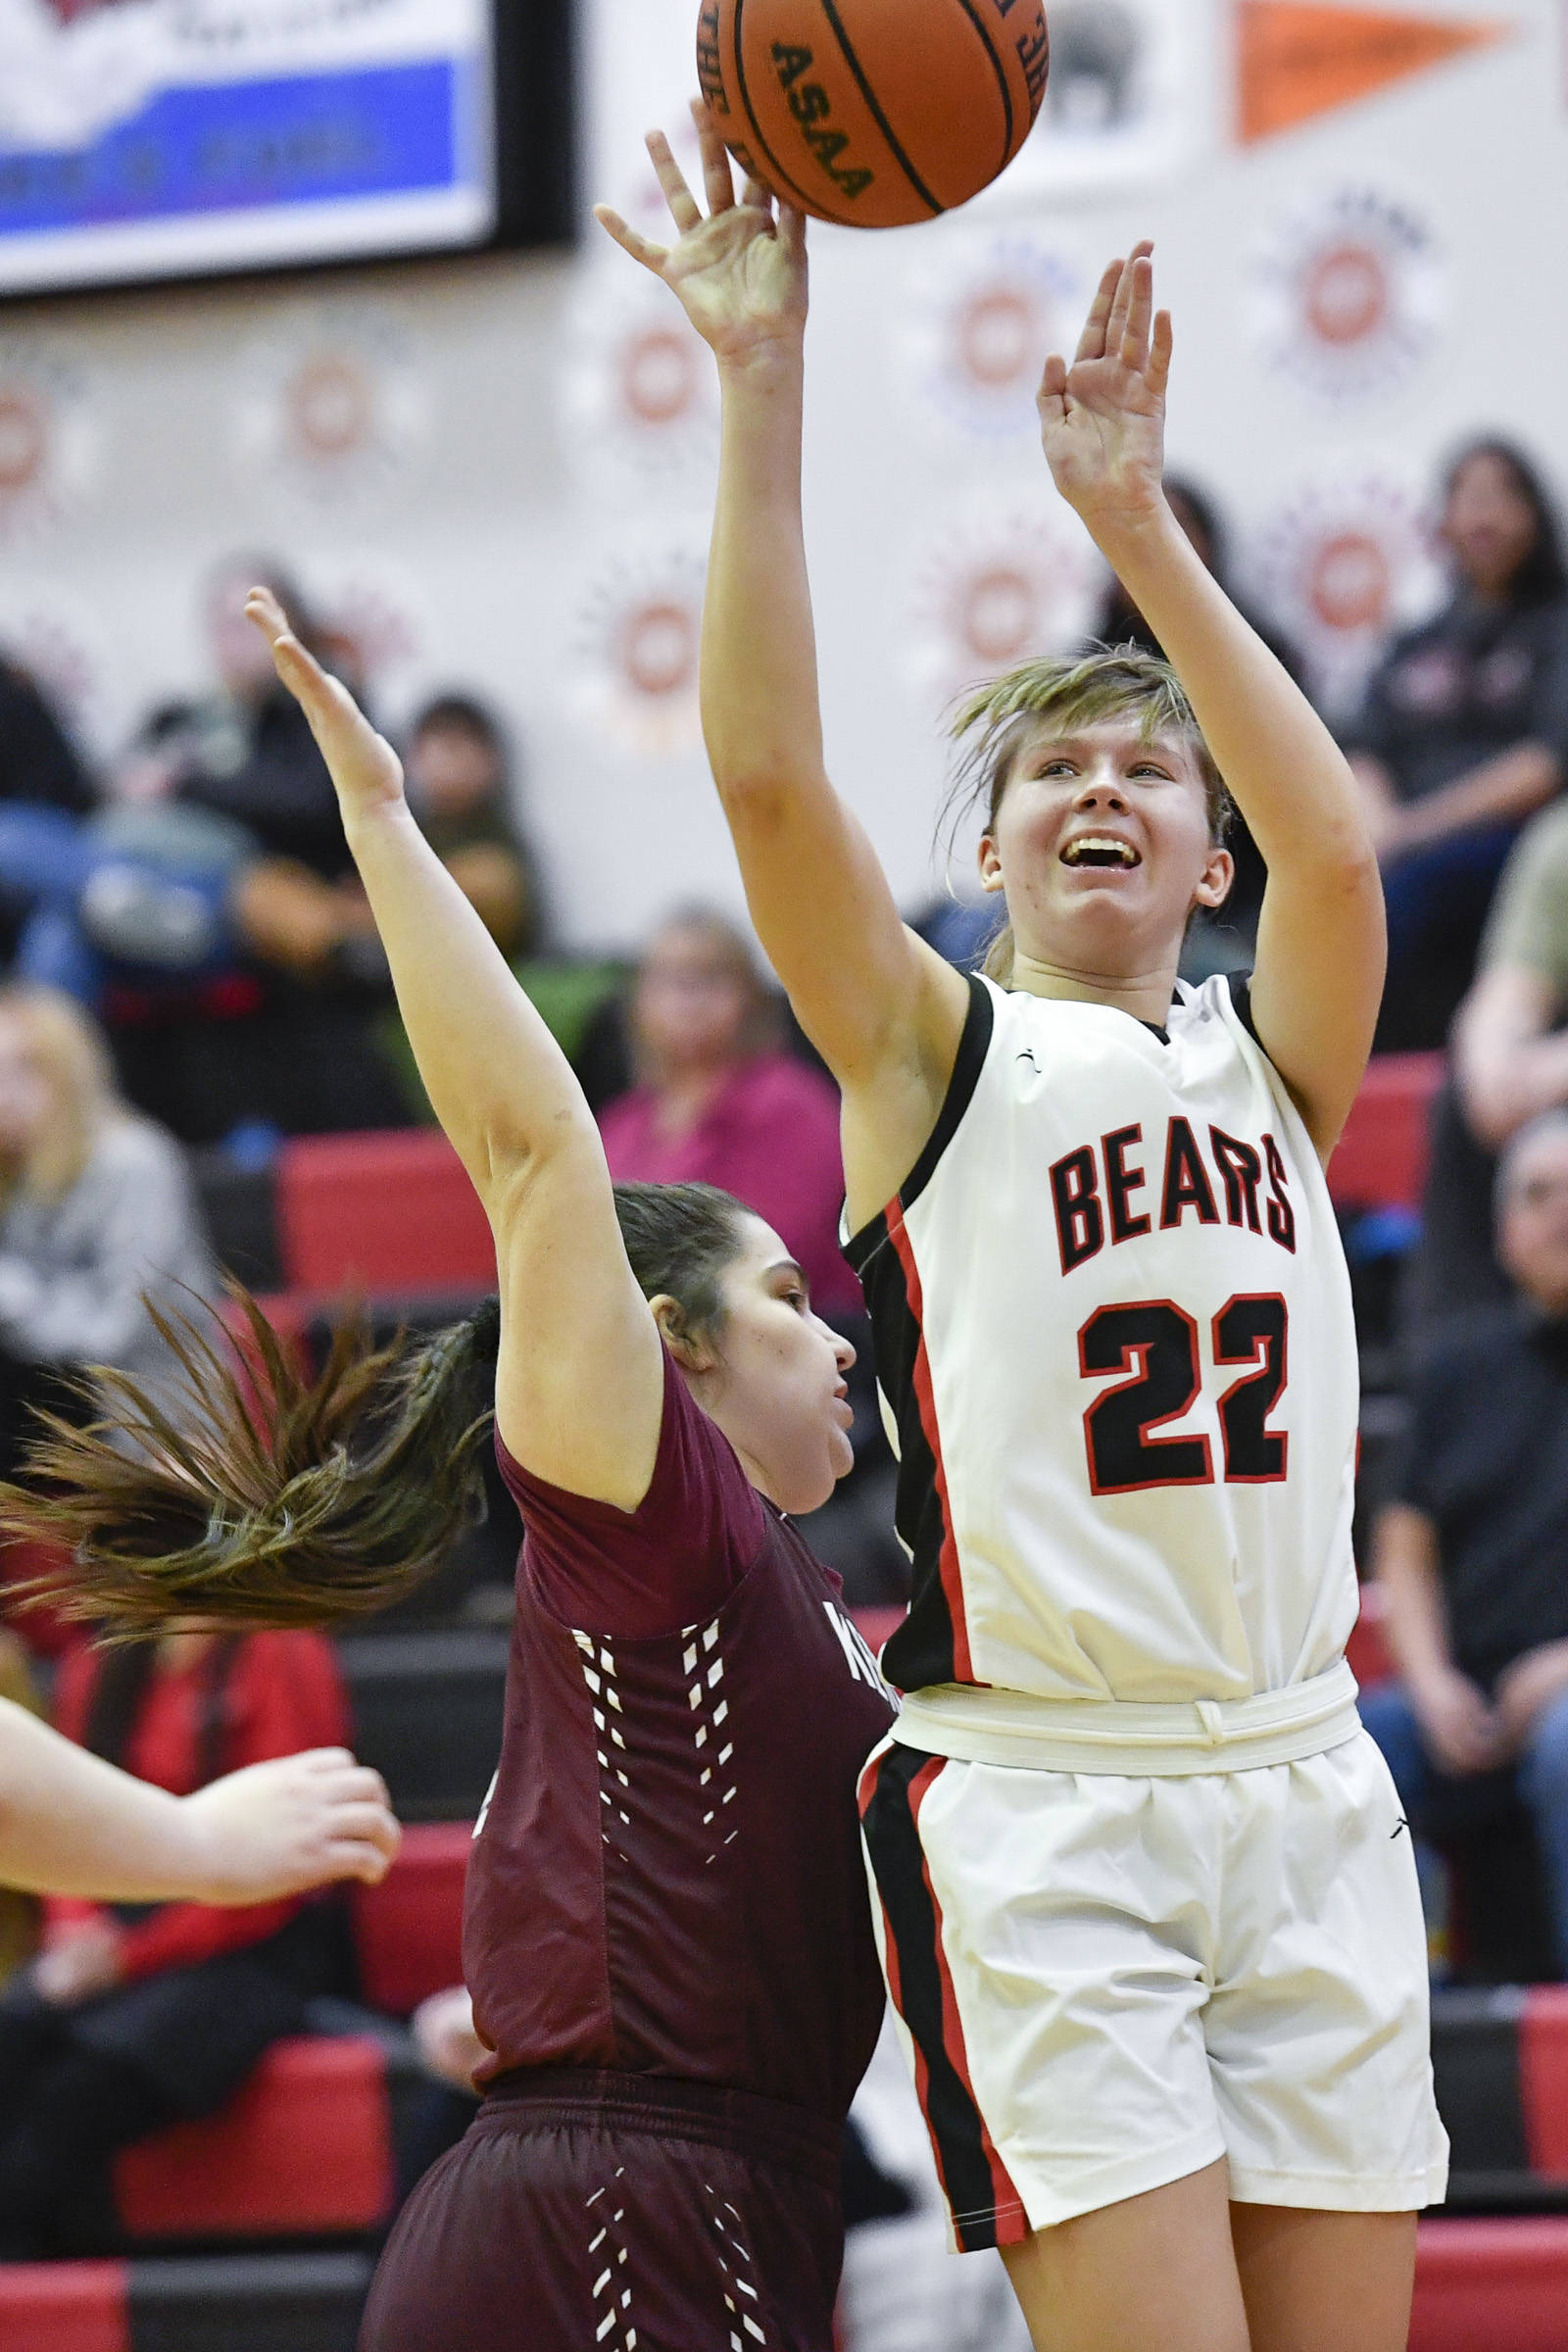 Juneau-Douglas' Caitlin Pusich, right, shoots against Ketchikan's Nadire Zhuta at JDHS on Friday, Feb. 22, 2019. JDHS won 56-38. (Michael Penn | Juneau Empire)